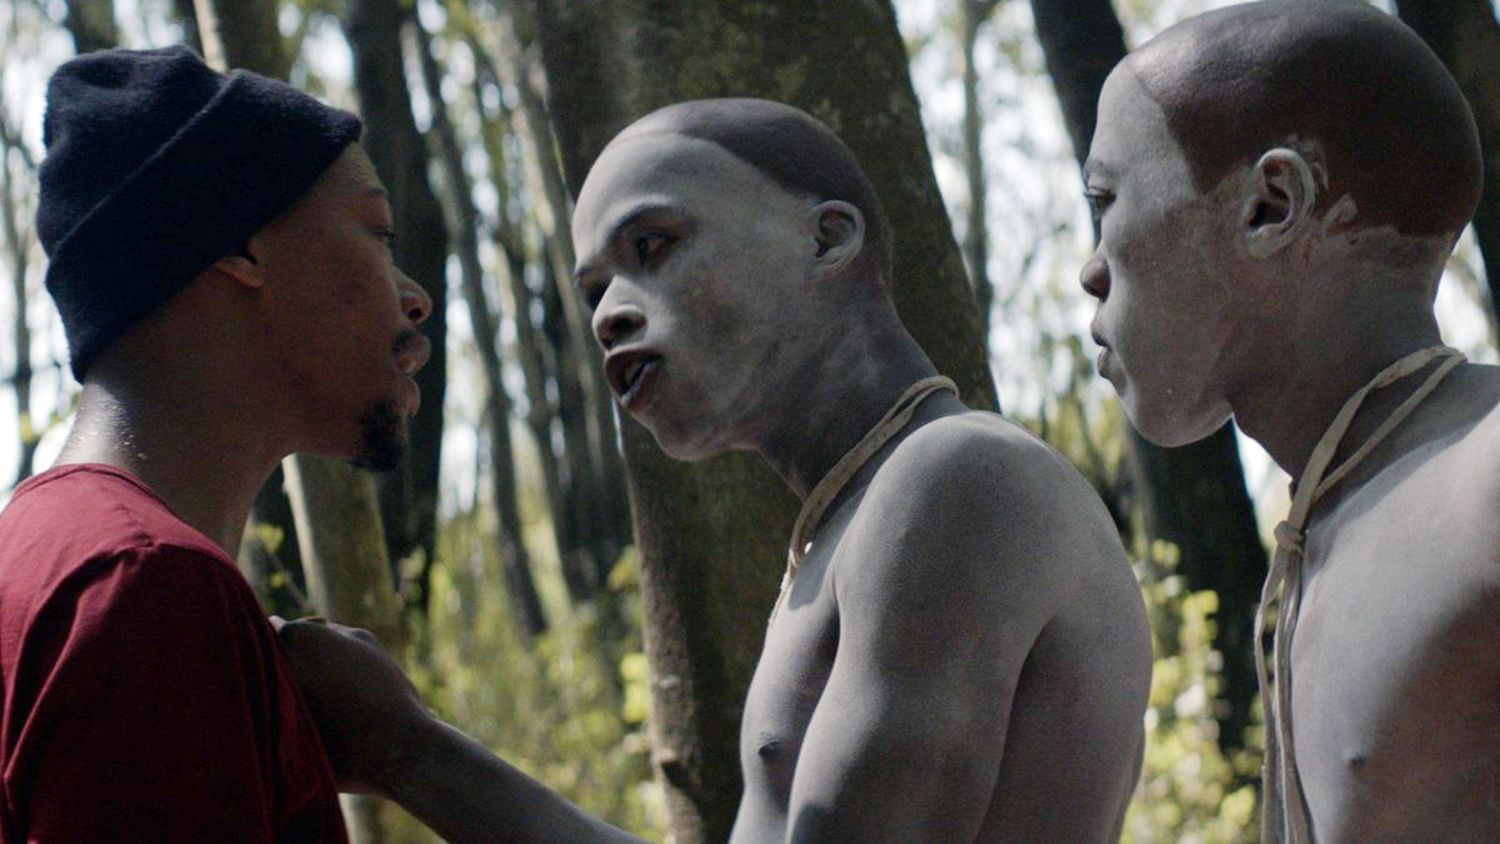 2017 LGBT Films - The Wound (gay, south Africa), 2